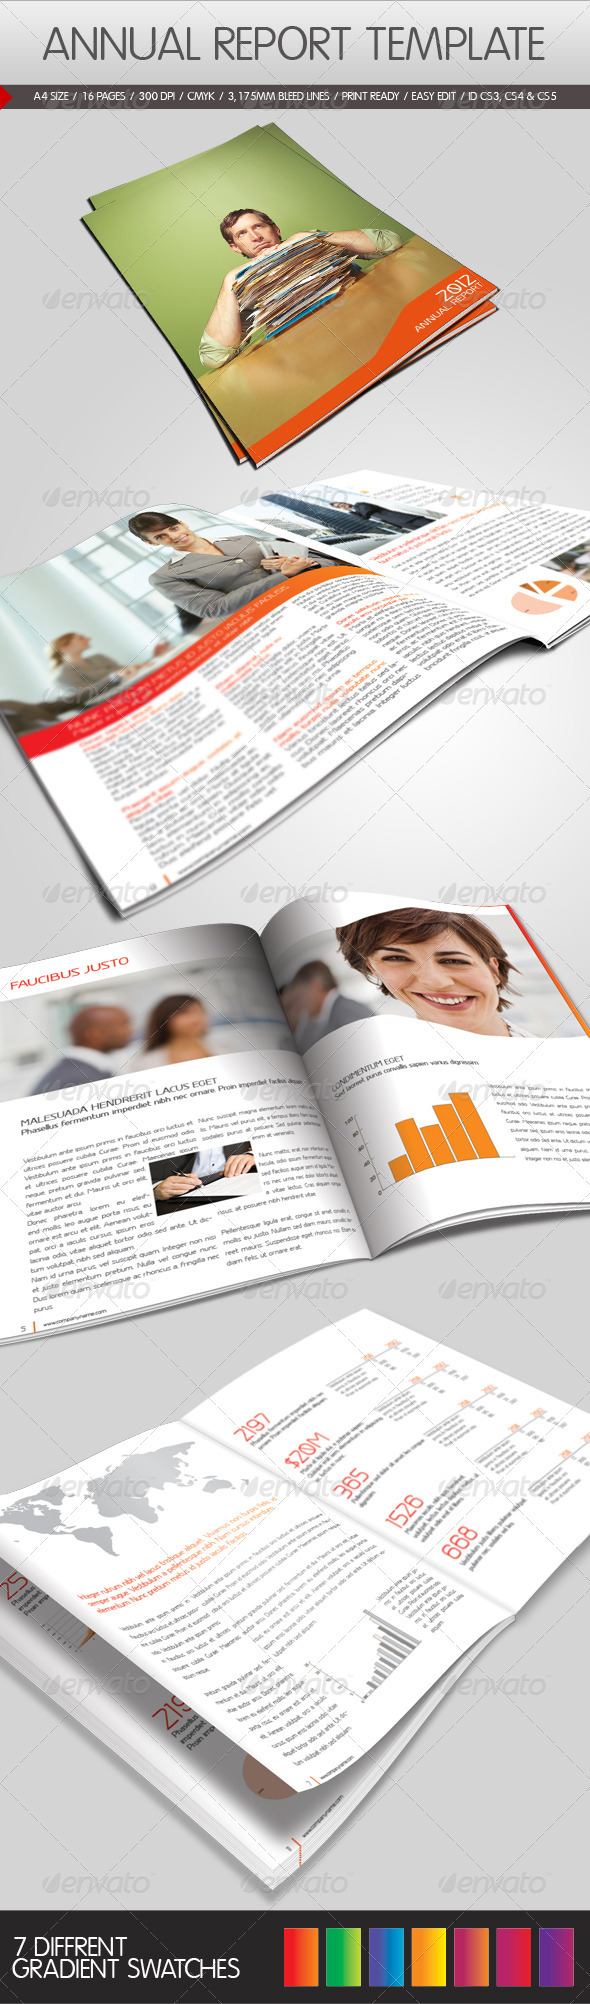 Annual Report Template Indesign Annual Report Template